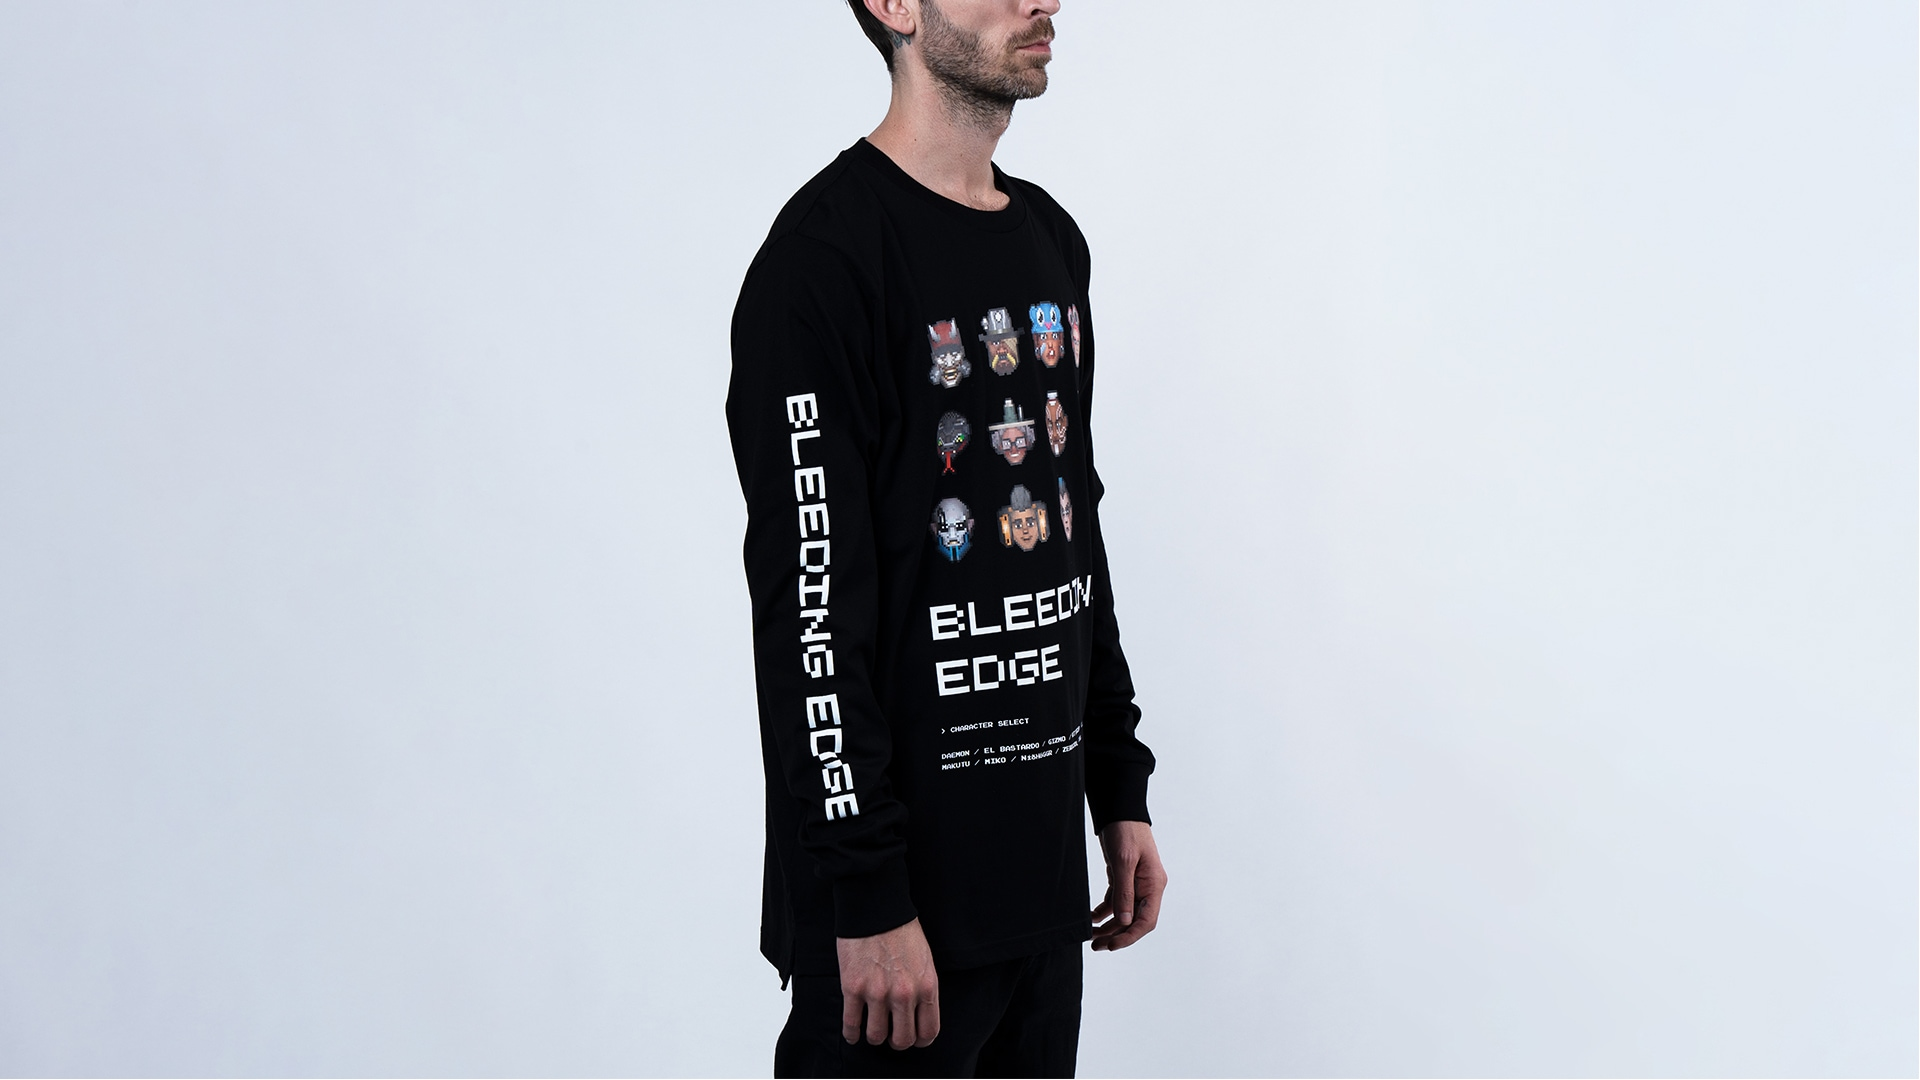 Un homme portant le t-shirt à manches longues Bleeding Edge 8-Bit